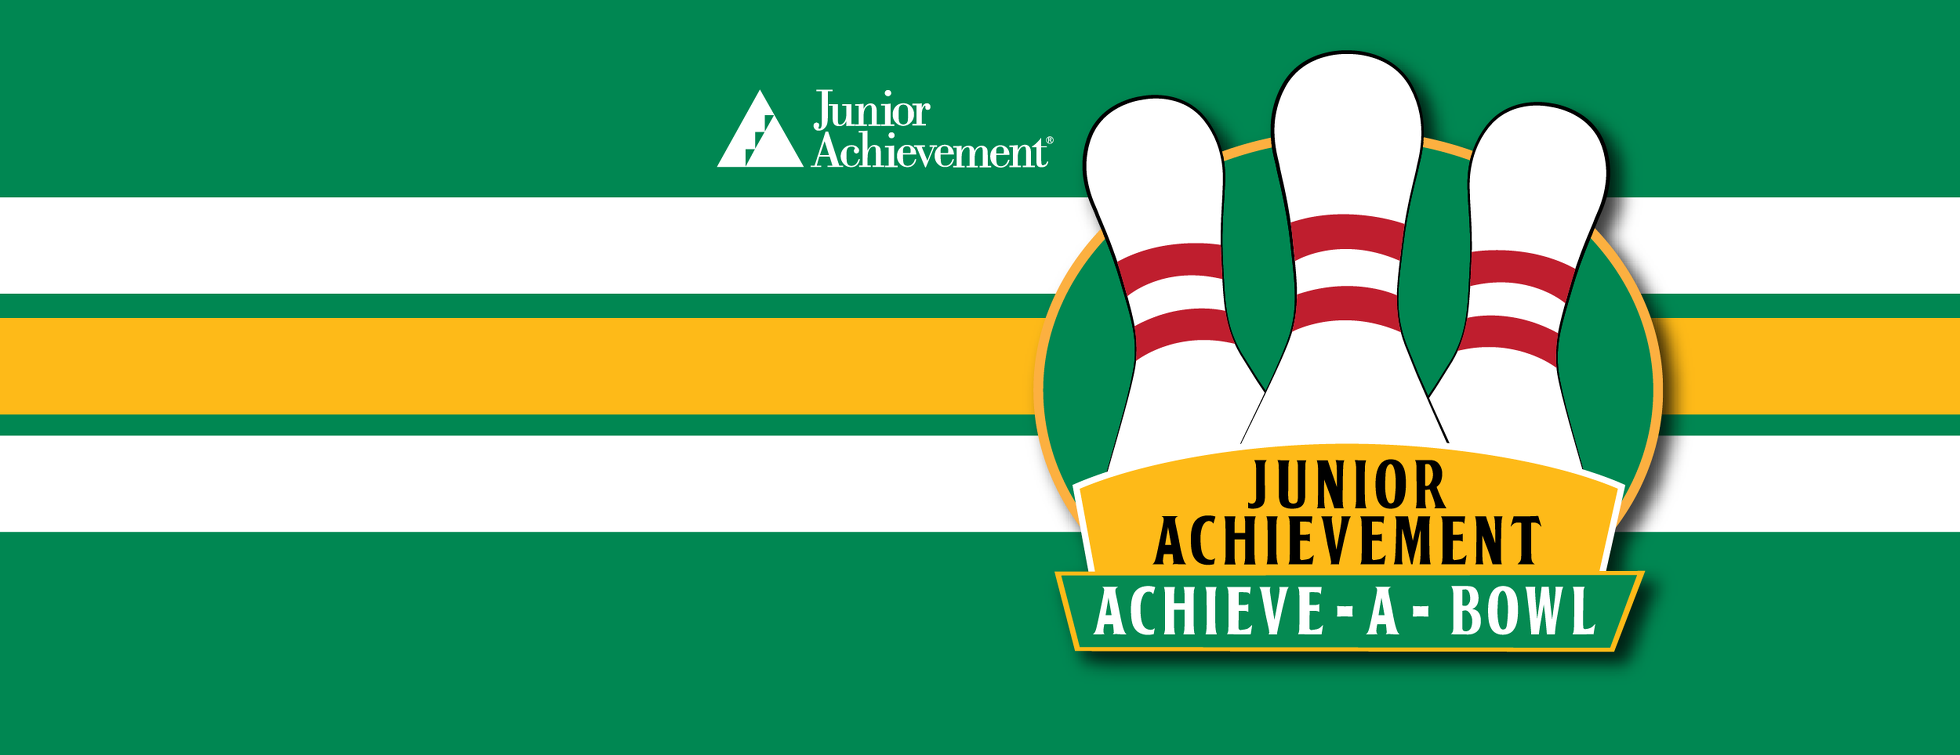 The JA Achieve-A-Bowl